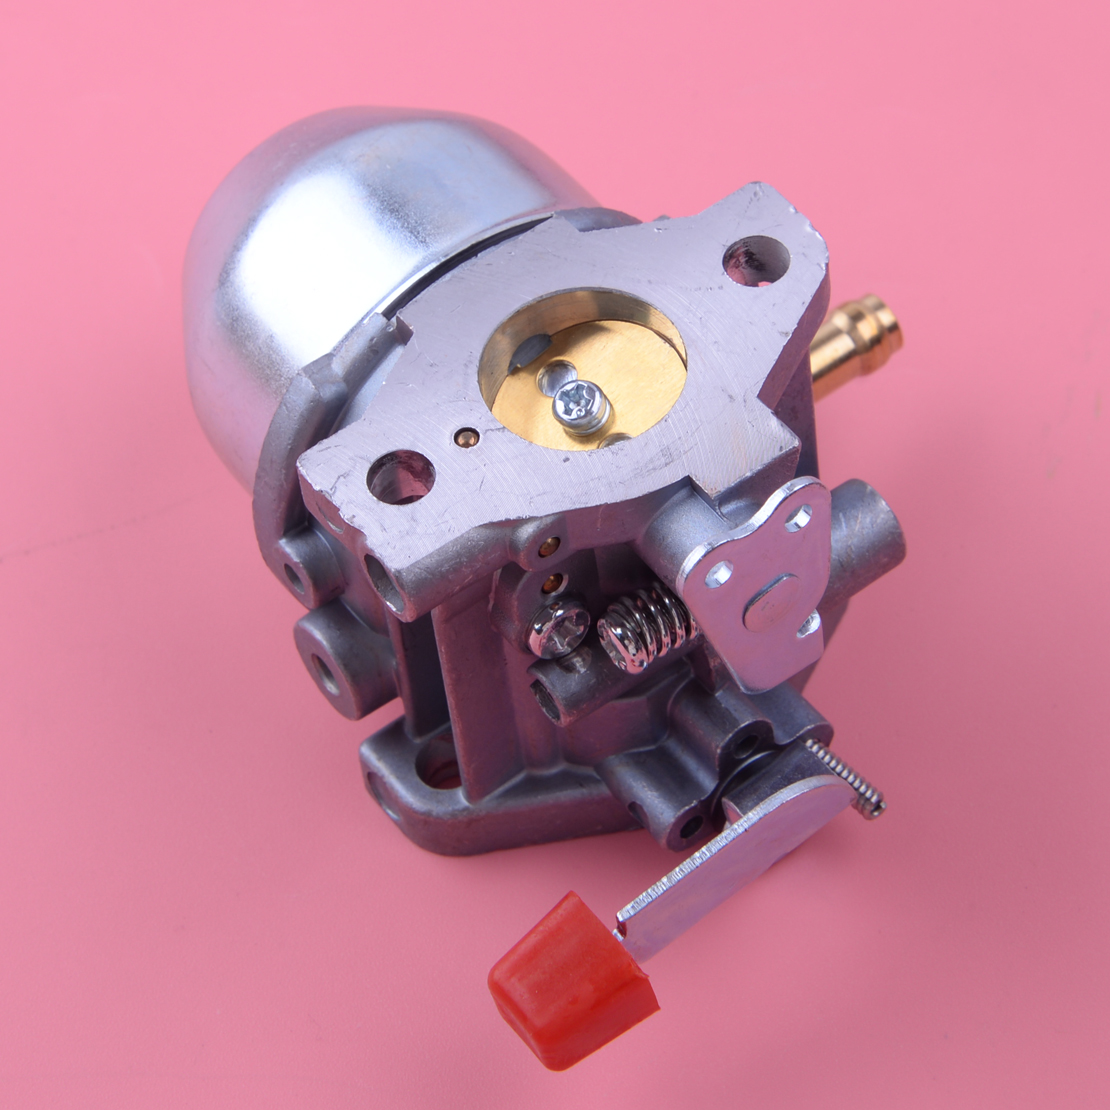 LETAOSK Zinc Alloy Carburetor Fit For Generac GN220 7.8HP 0C1535ASRV OC1535 4000XL 4000EXLLETAOSK Zinc Alloy Carburetor Fit For Generac GN220 7.8HP 0C1535ASRV OC1535 4000XL 4000EXL